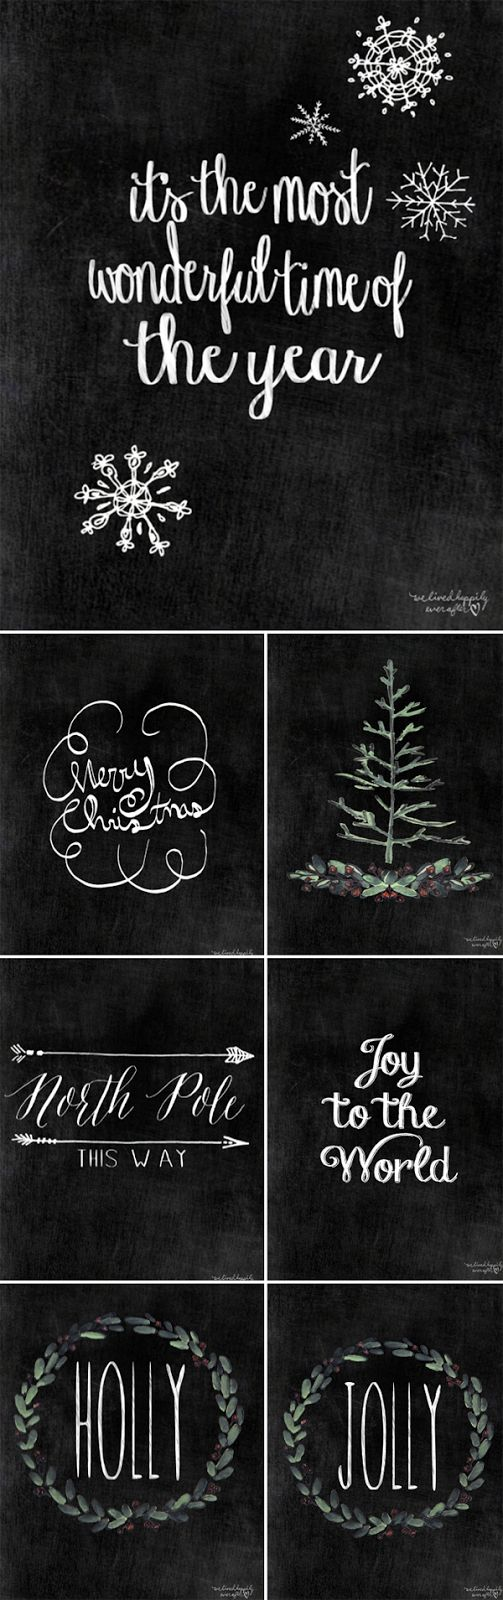 The other day I shared some pretty Free Chalkboard Christmas Printables (HERE) & today I have 7 MORE for you! They all have hand drawn elements in them, and come in high resolution (300 dpi) & are siz